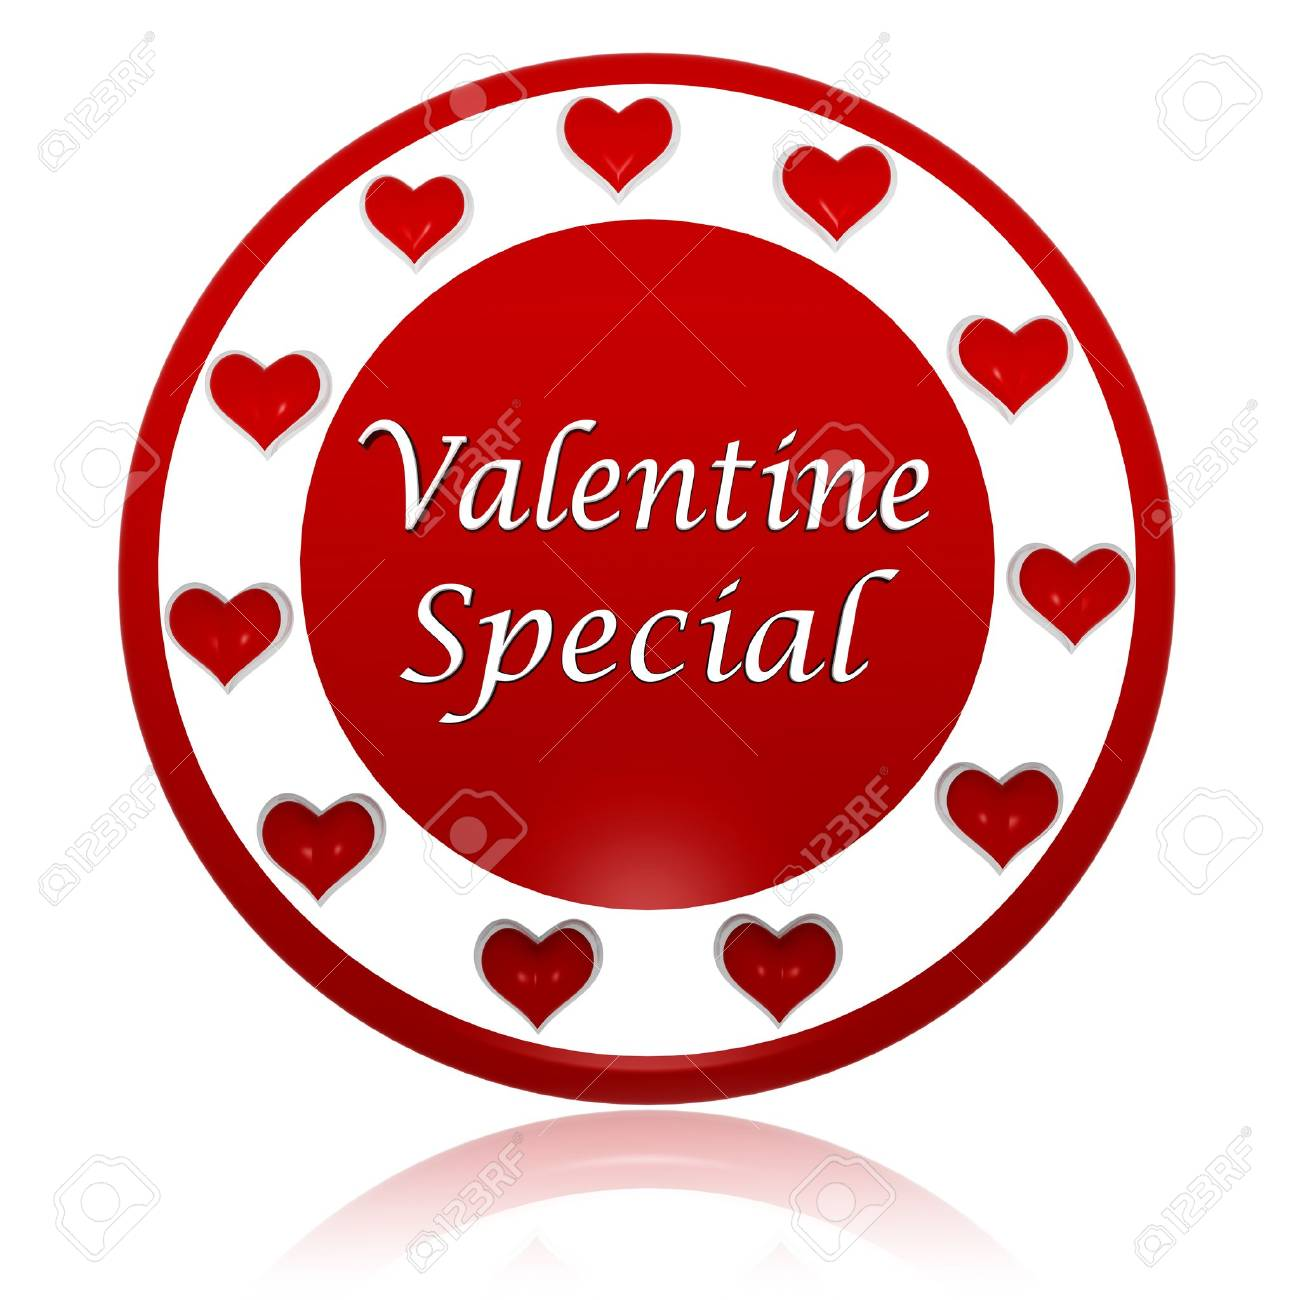 3d red circle banner with text valentine special and hearts symbols, holiday and business concept Stock Photo - 17570081